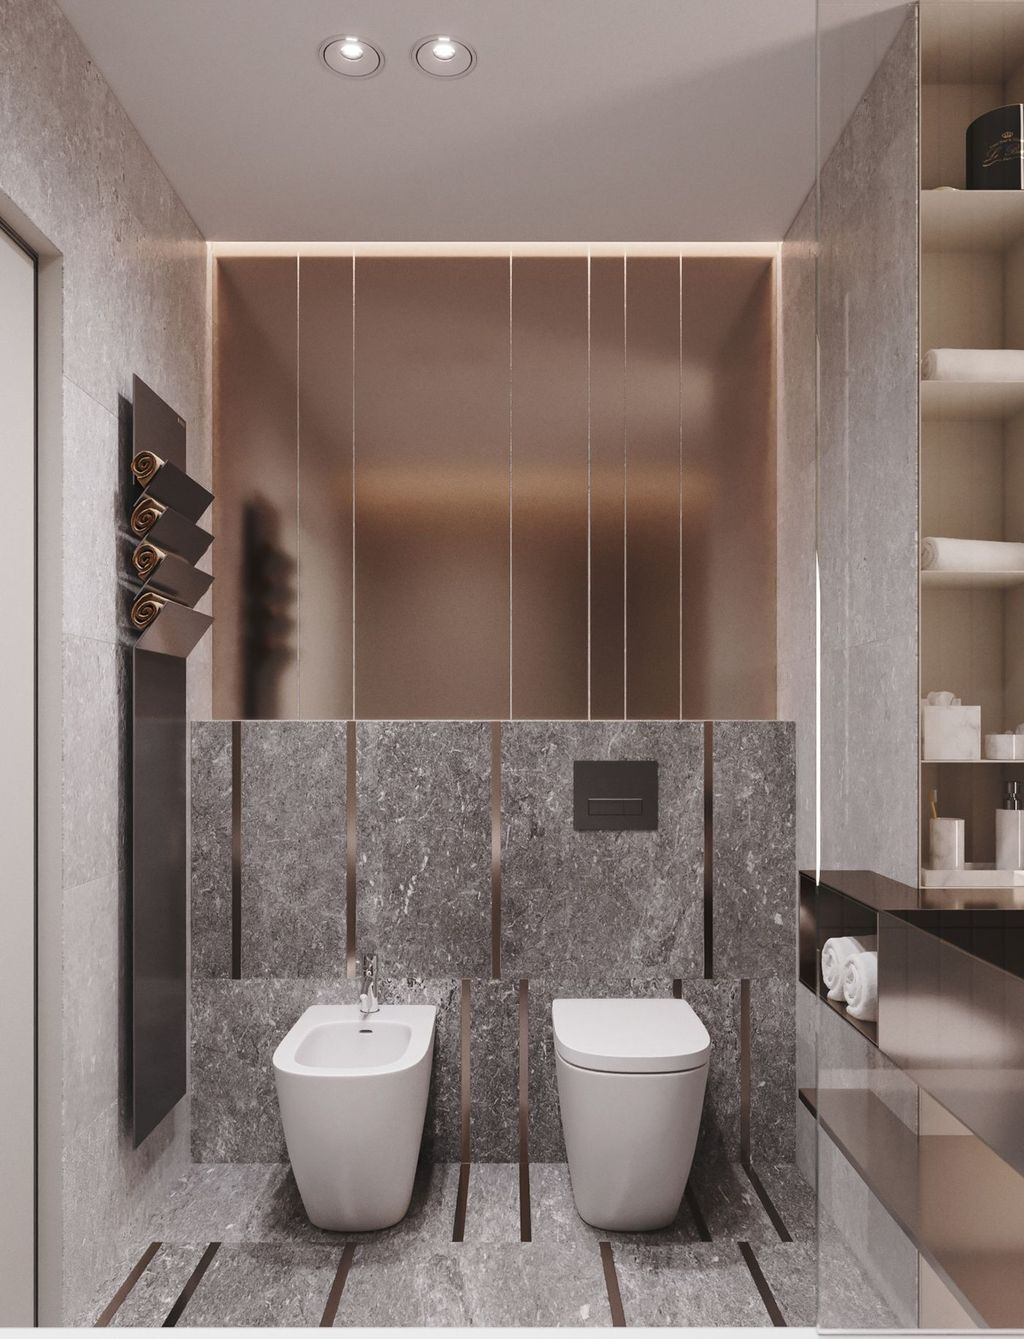 20 Outstanding Small Bathroom Design Ideas You Have To Know Trendhmdcr Bathroom Design Small Top Bathroom Design Bathroom Interior Design